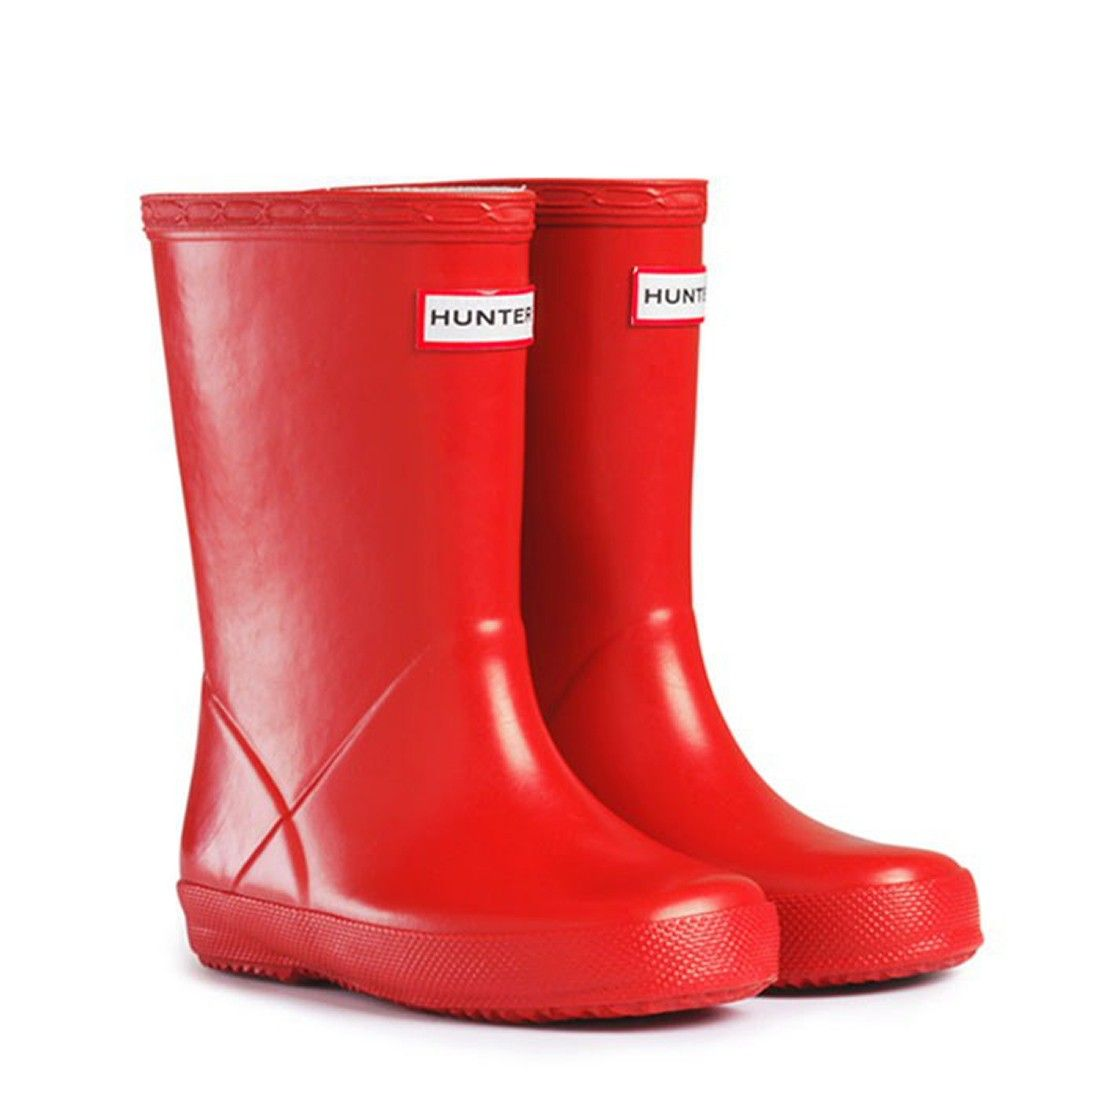 Hunter Kids First Wellies Red | Naylors.com